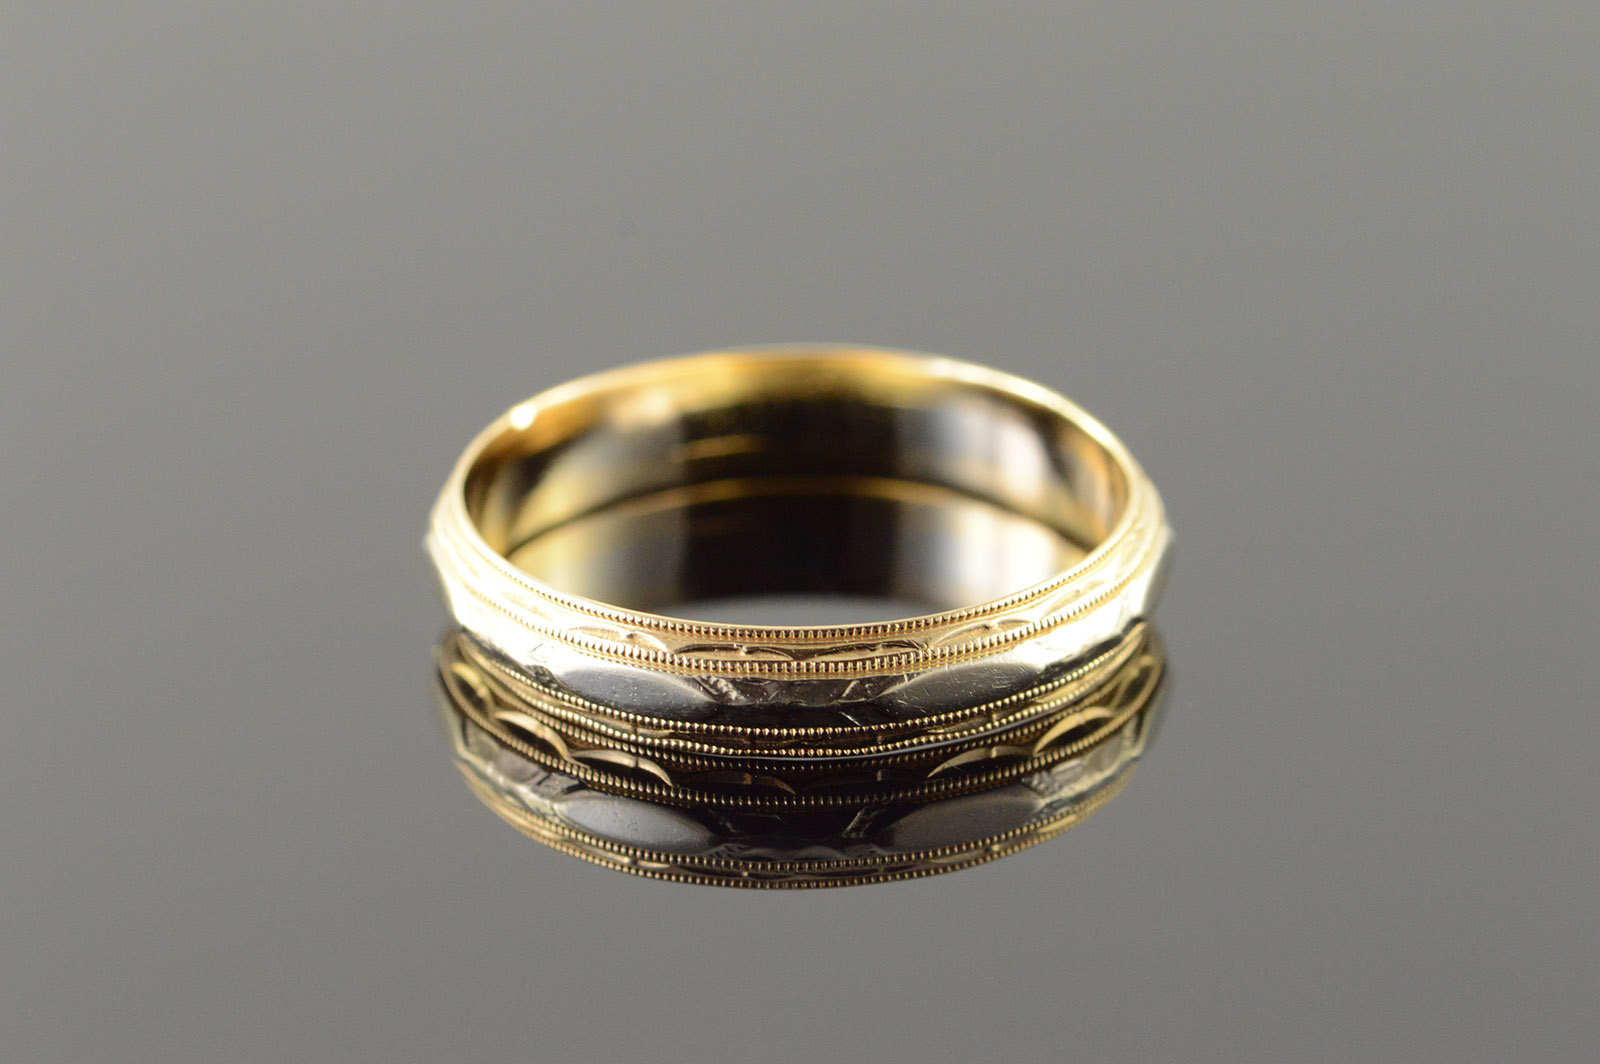 mens modern organic two tone wedding band two tone wedding band Mens Modern Organic Two Tone Wedding Band in 18K recycled gold with twig detail in center